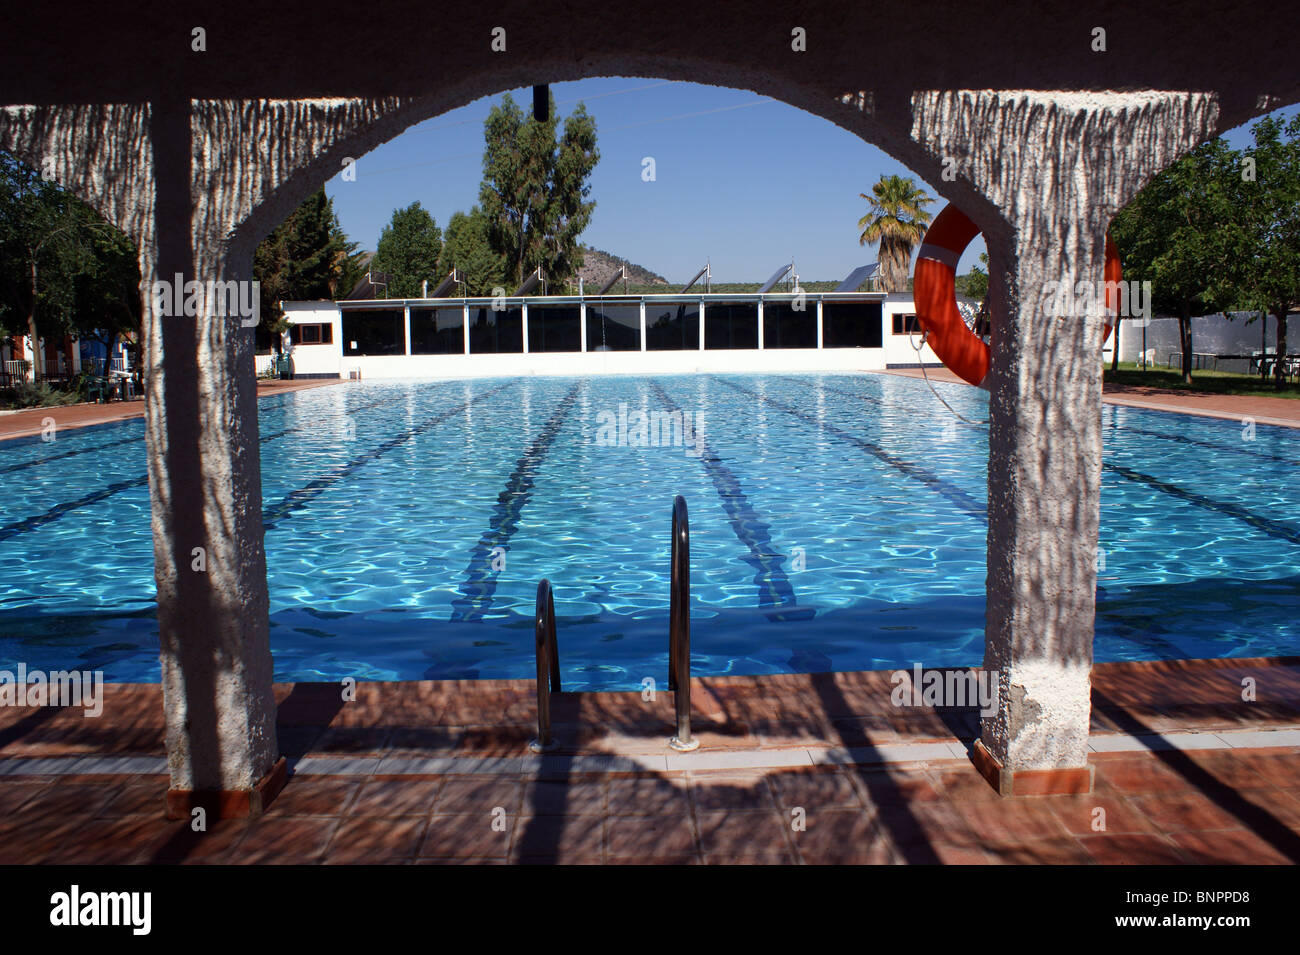 Olympic Swimming Pool Empty Stock Photos Olympic